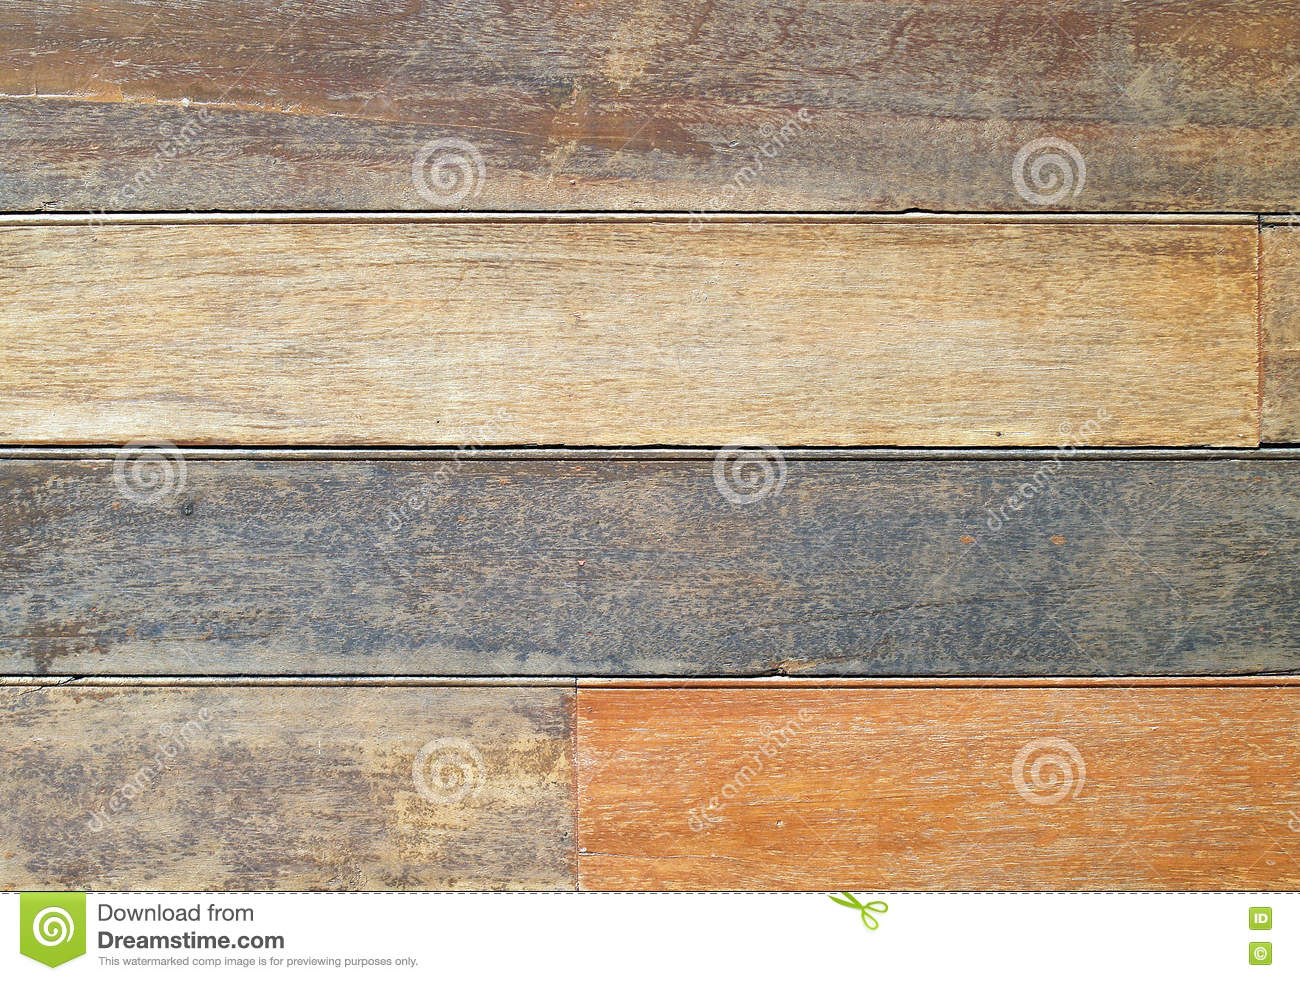 brown wooden plank wall or floor texture background, row of wood panel for decorate houses in country style